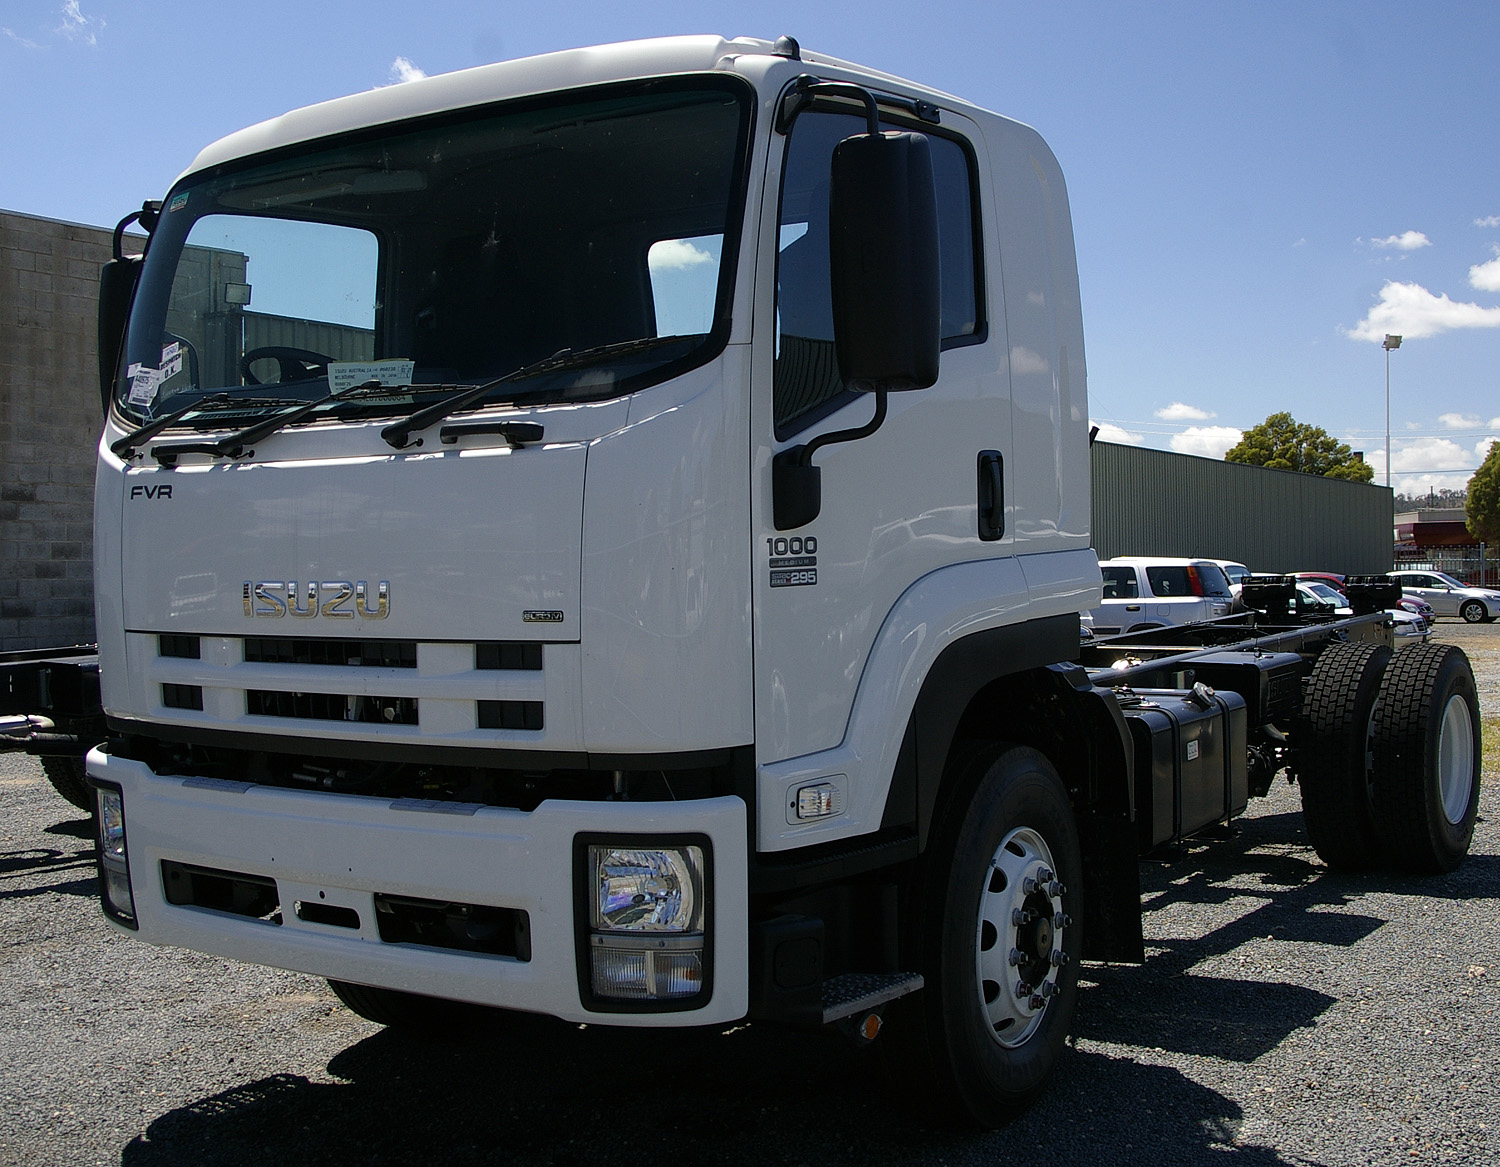 Isuzu fvr photo - 2